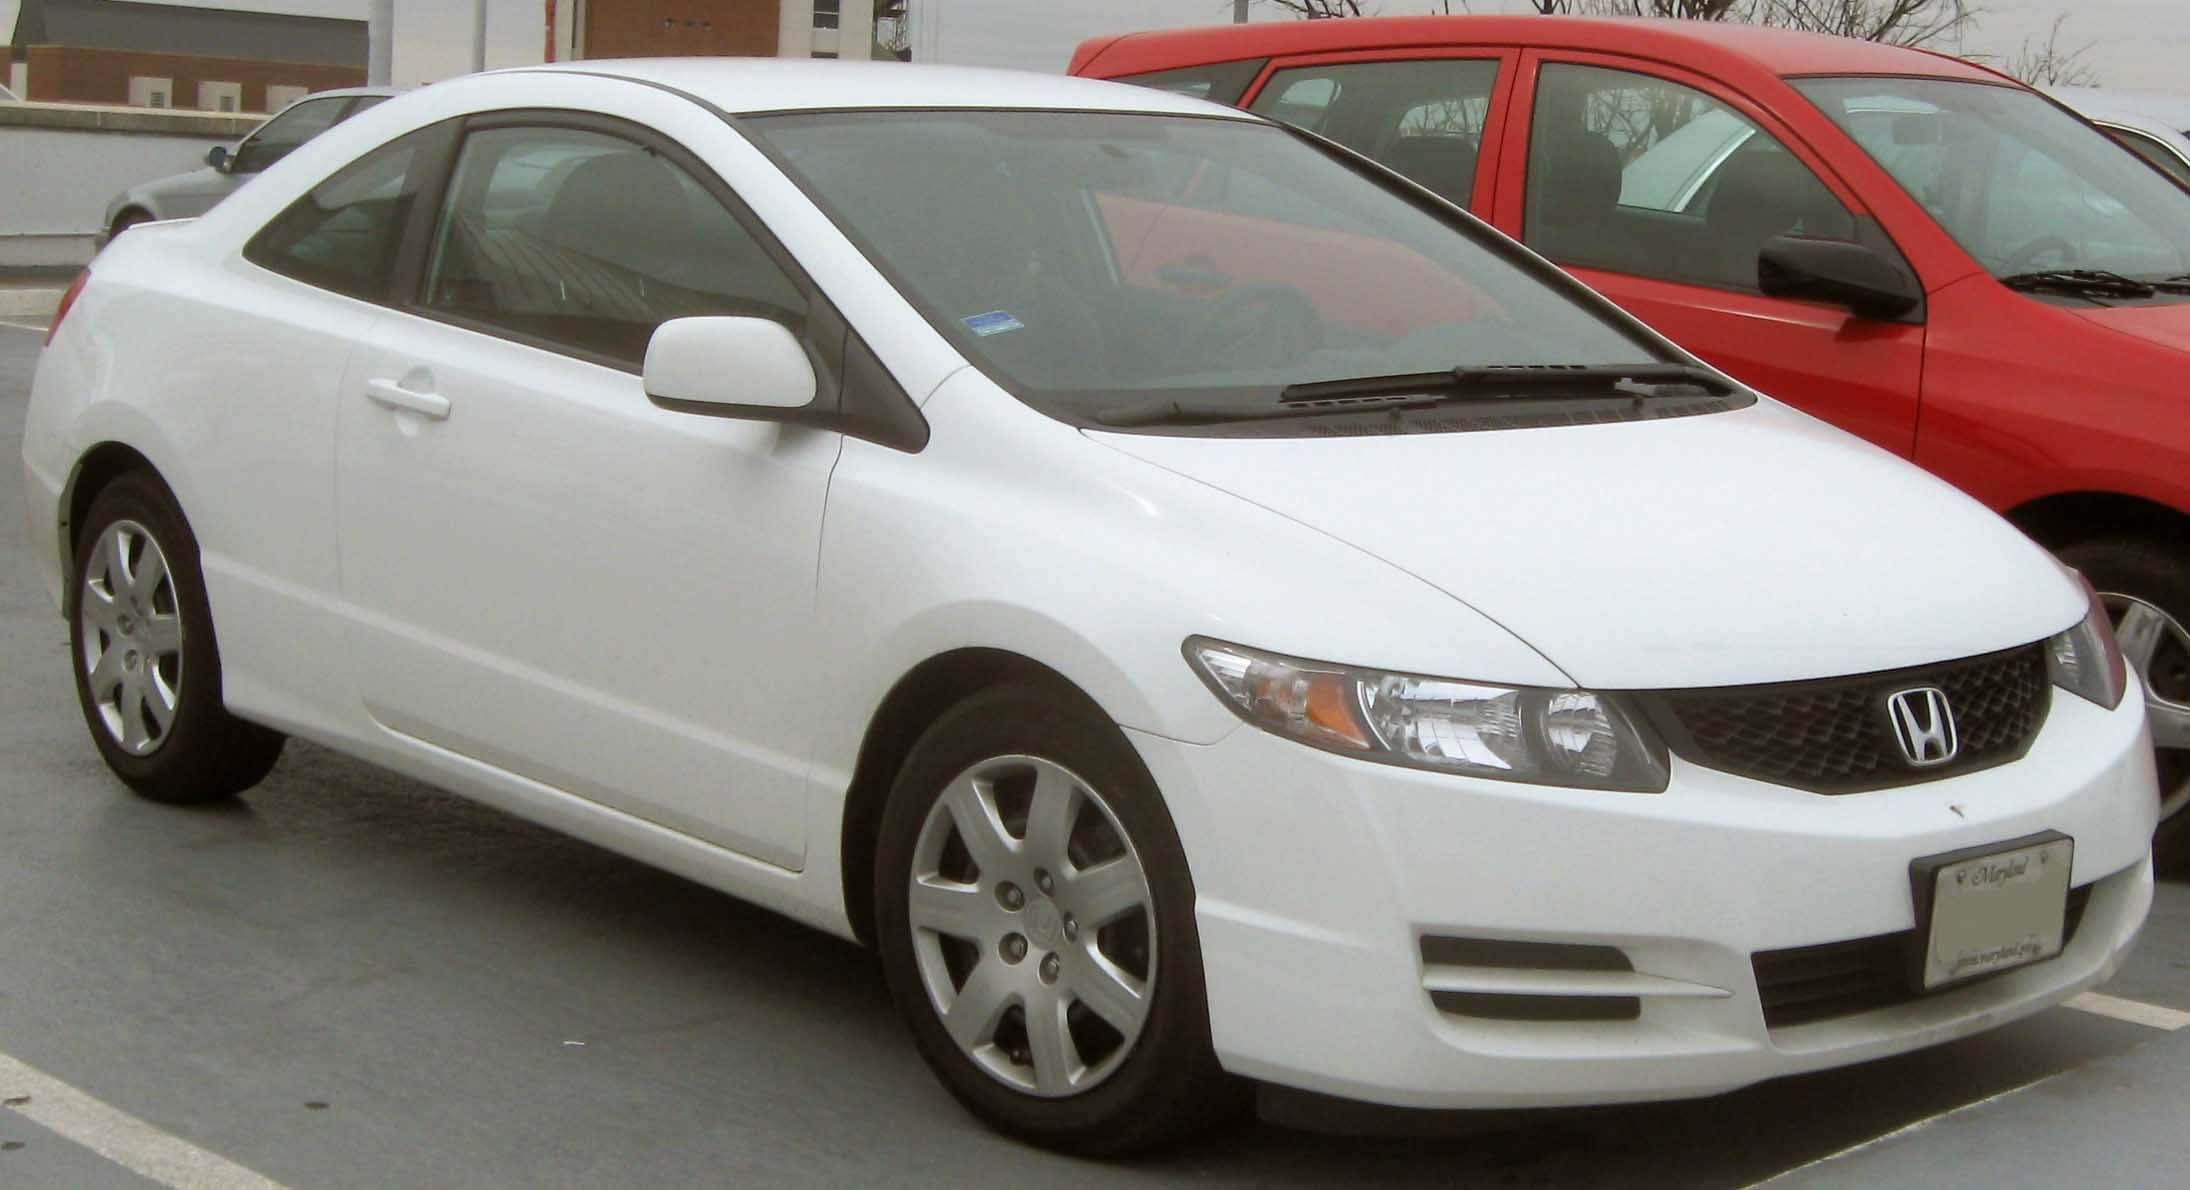 File:09 Honda Civic LX Coupe